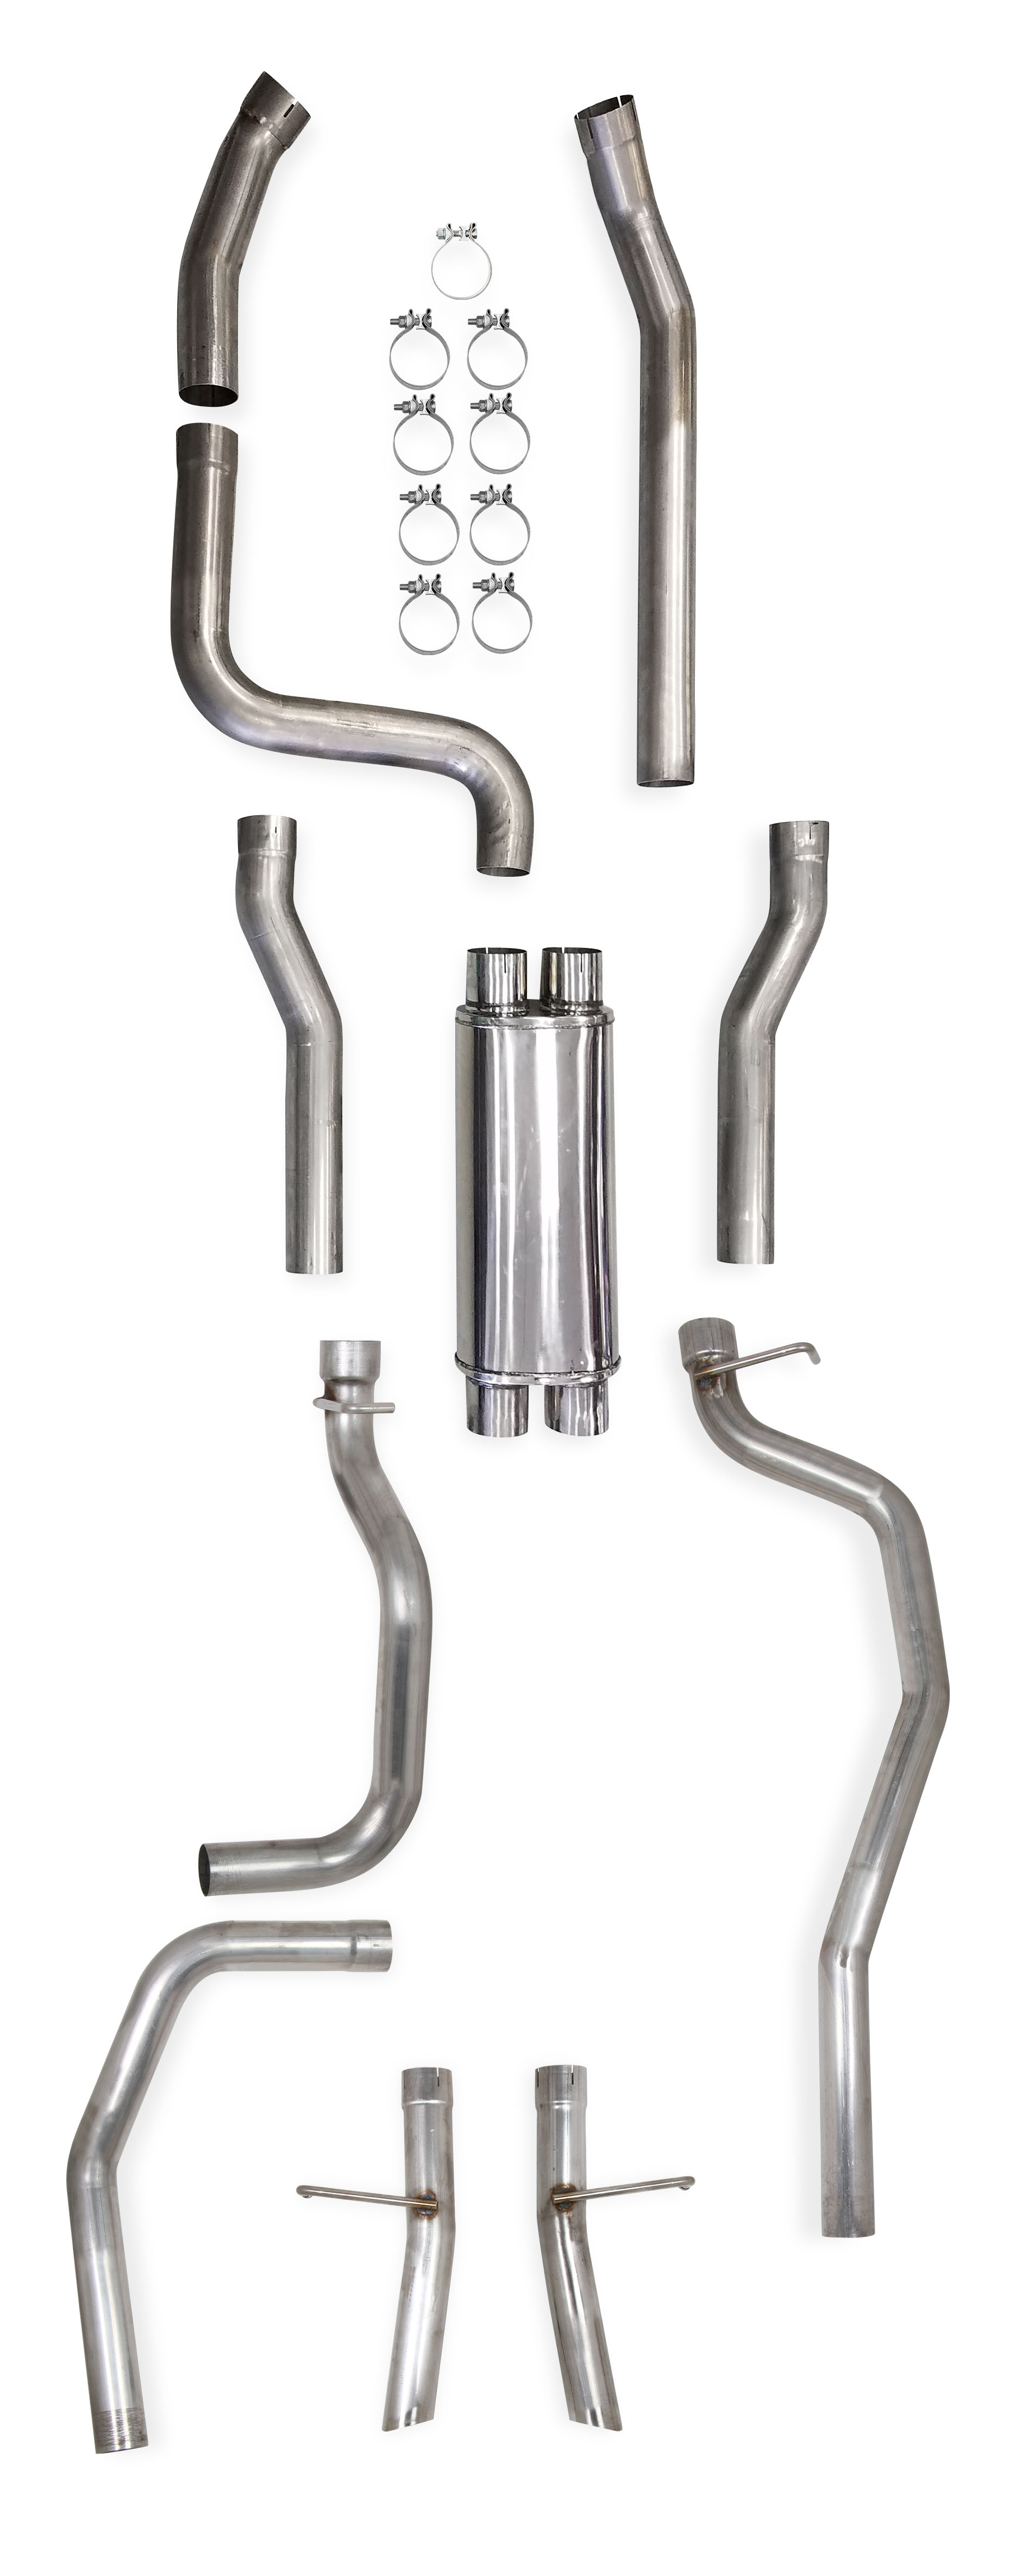 1994-04 GM S-10/Sonoma 2WD LS Swap Exhaust System, Dual 3